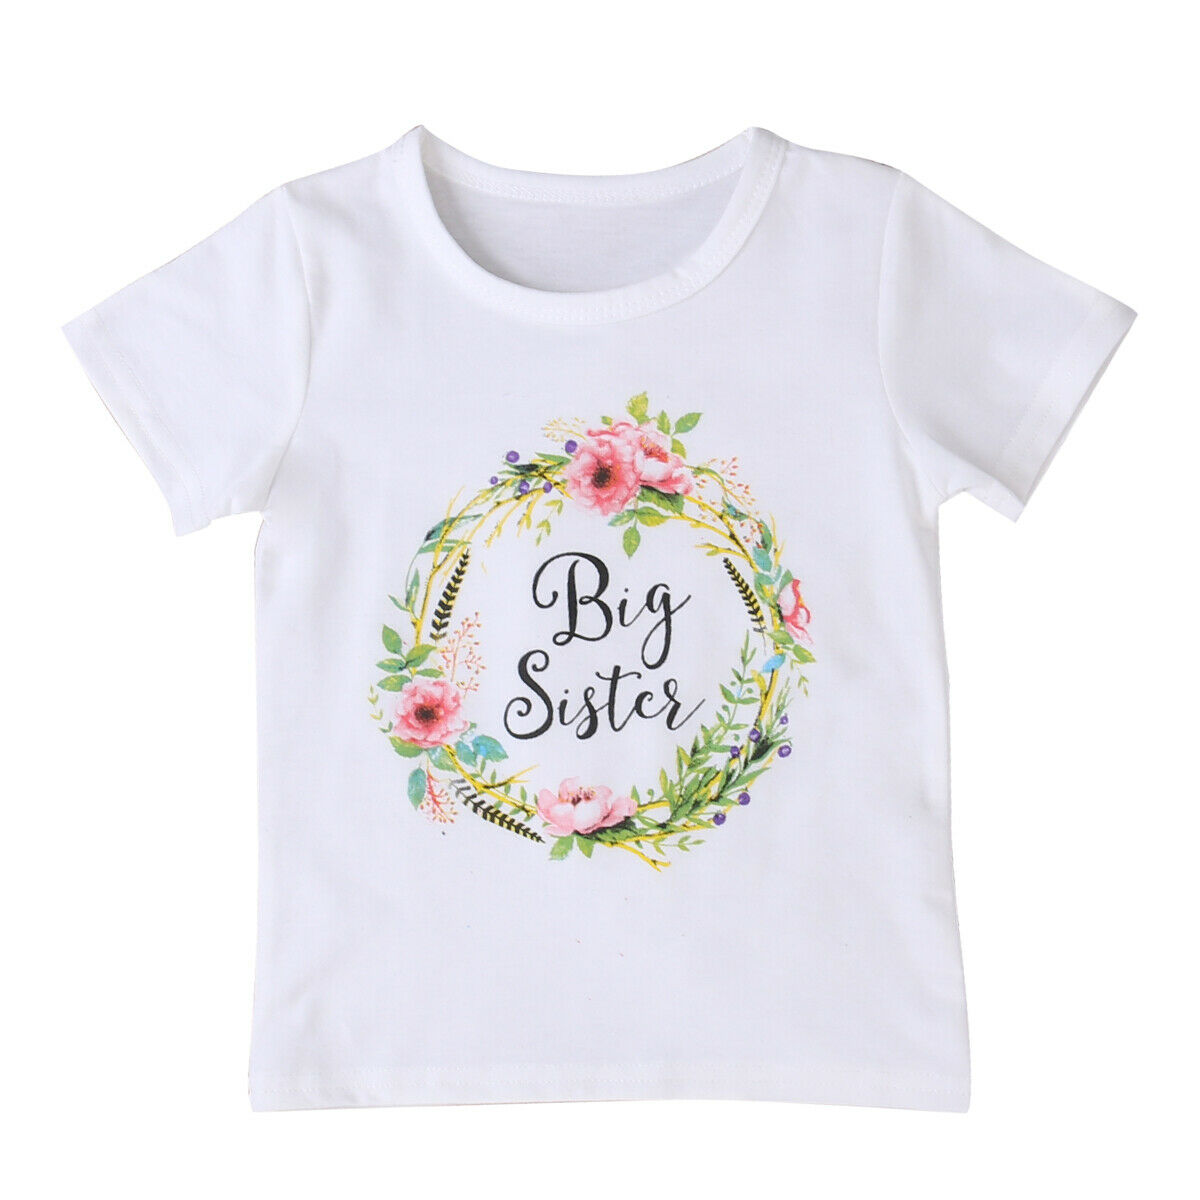 Honganda Toddler Newborn Baby Boy Sibling Shirt Set Big Brother Little Brother Deer Romper Outfit Clothes